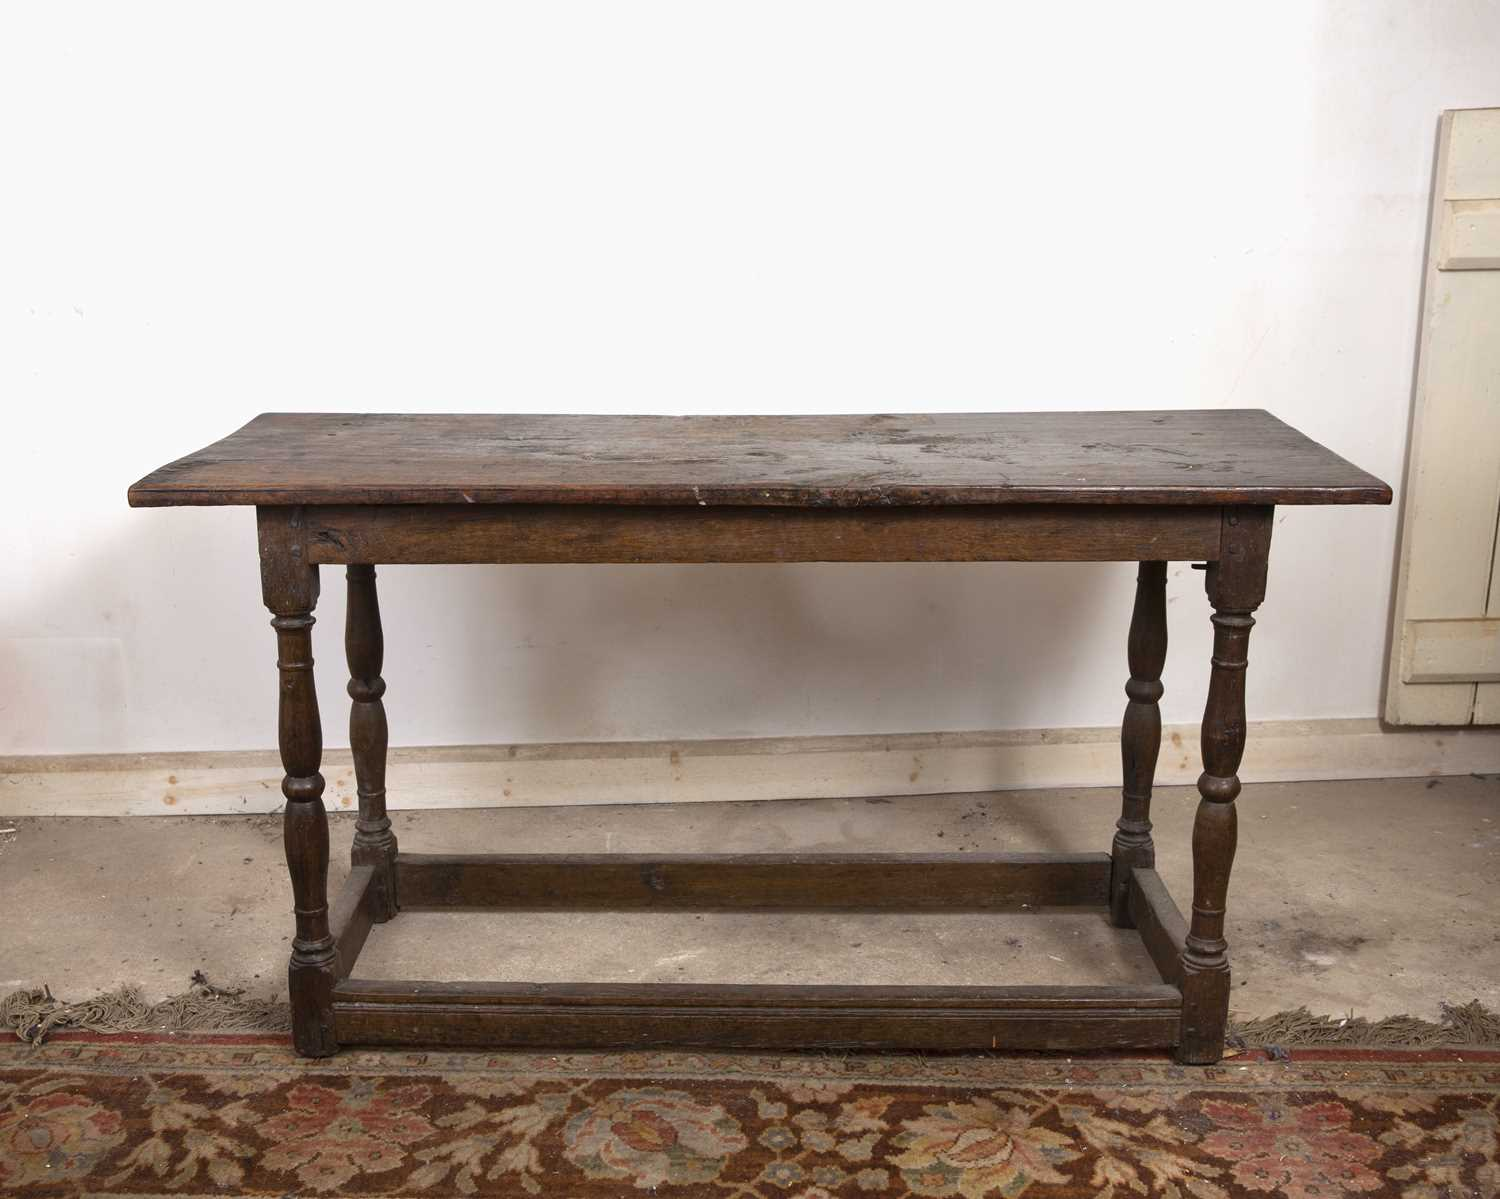 An 18th century oak rectangular side table, on baluster turned legs united by stretchers, 125cm